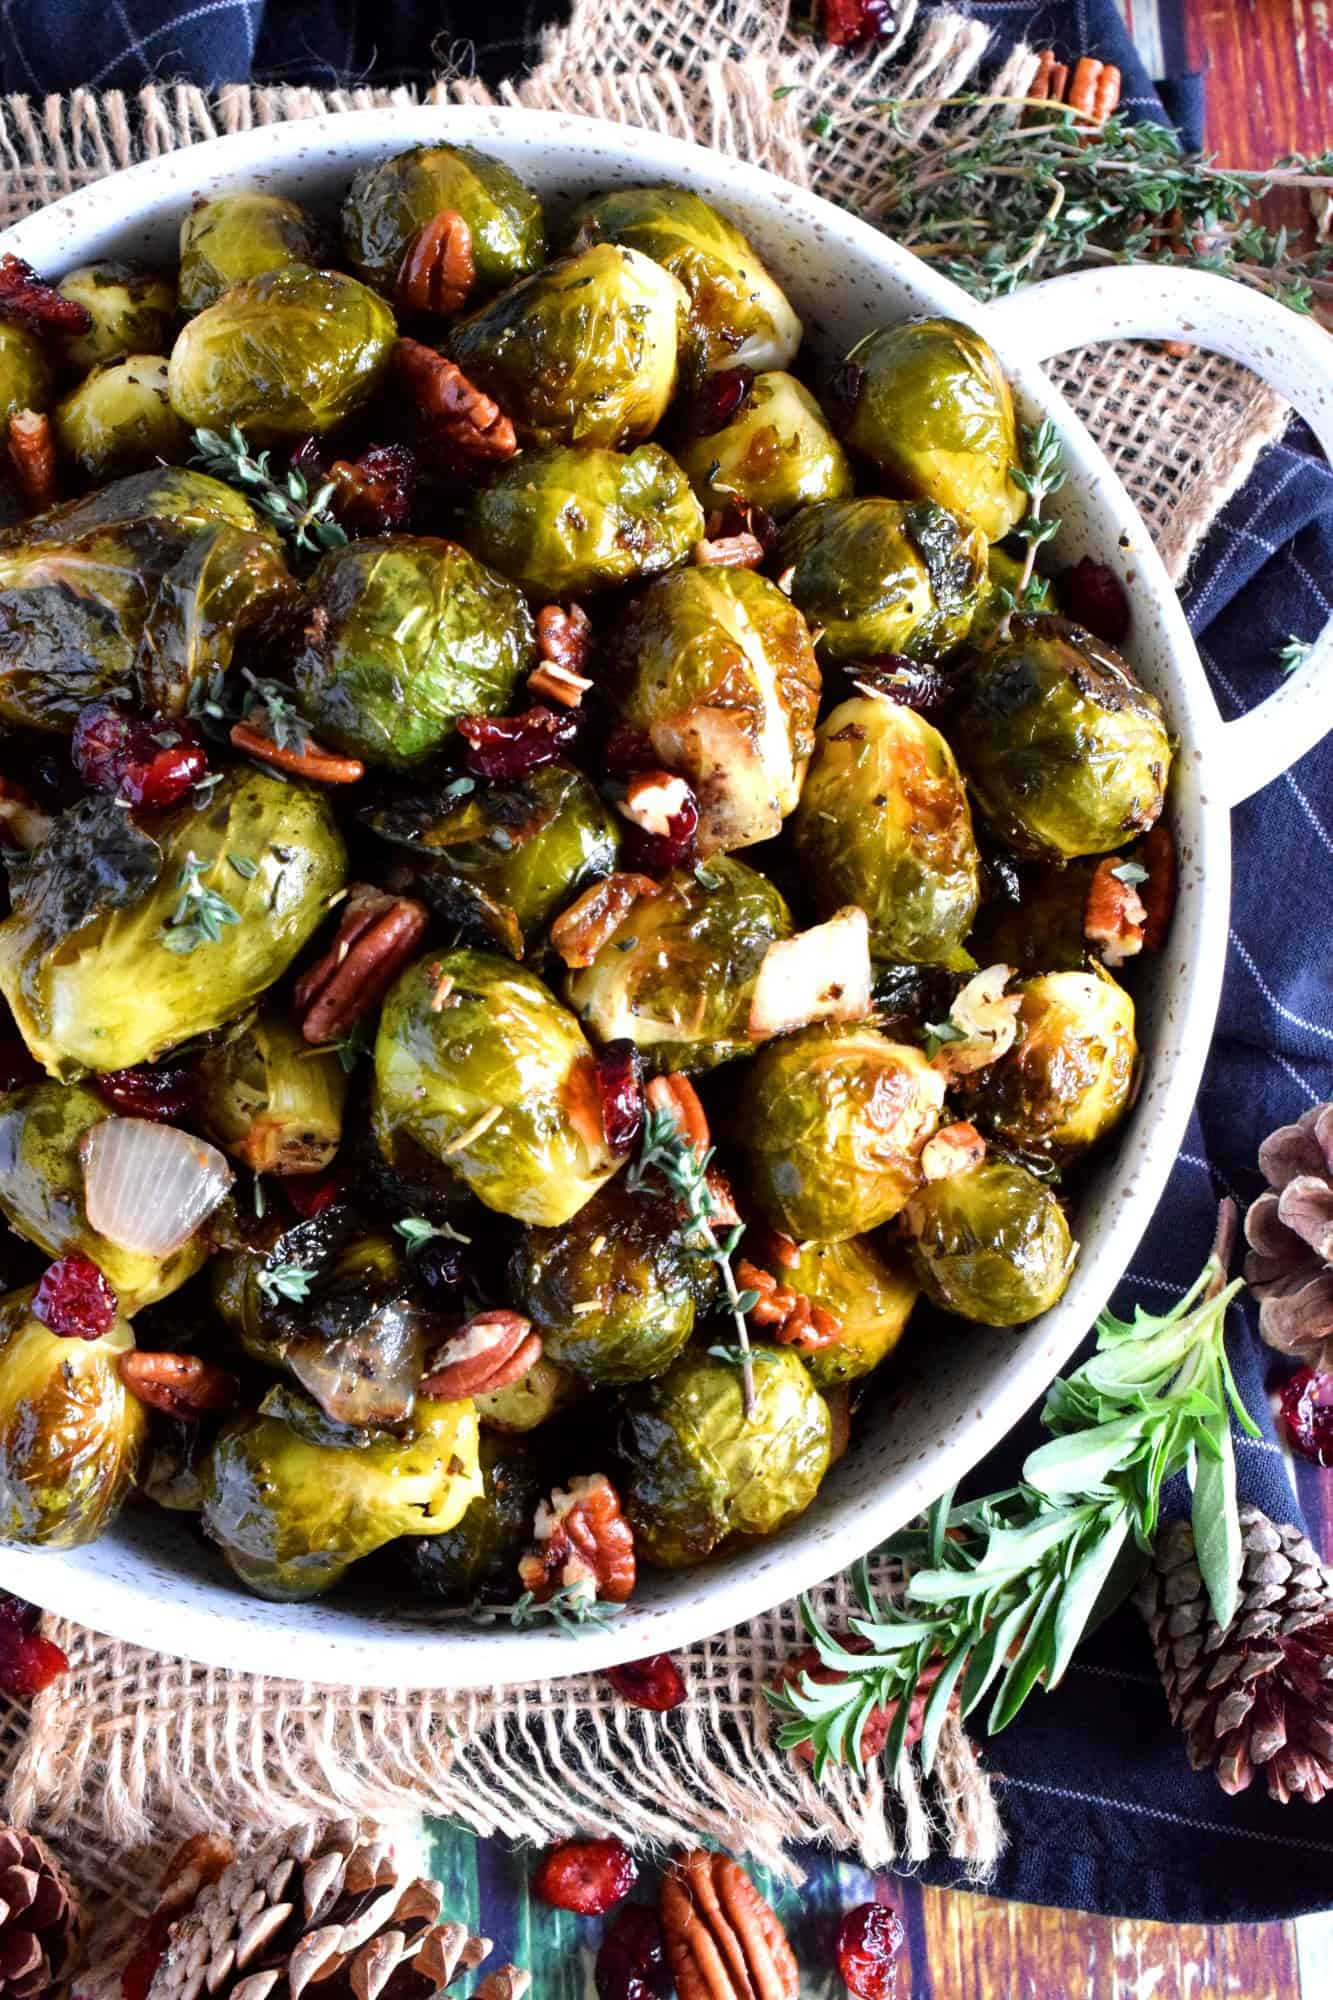 Whole Roasted Brussels Sprouts With Pecans And Cranberries